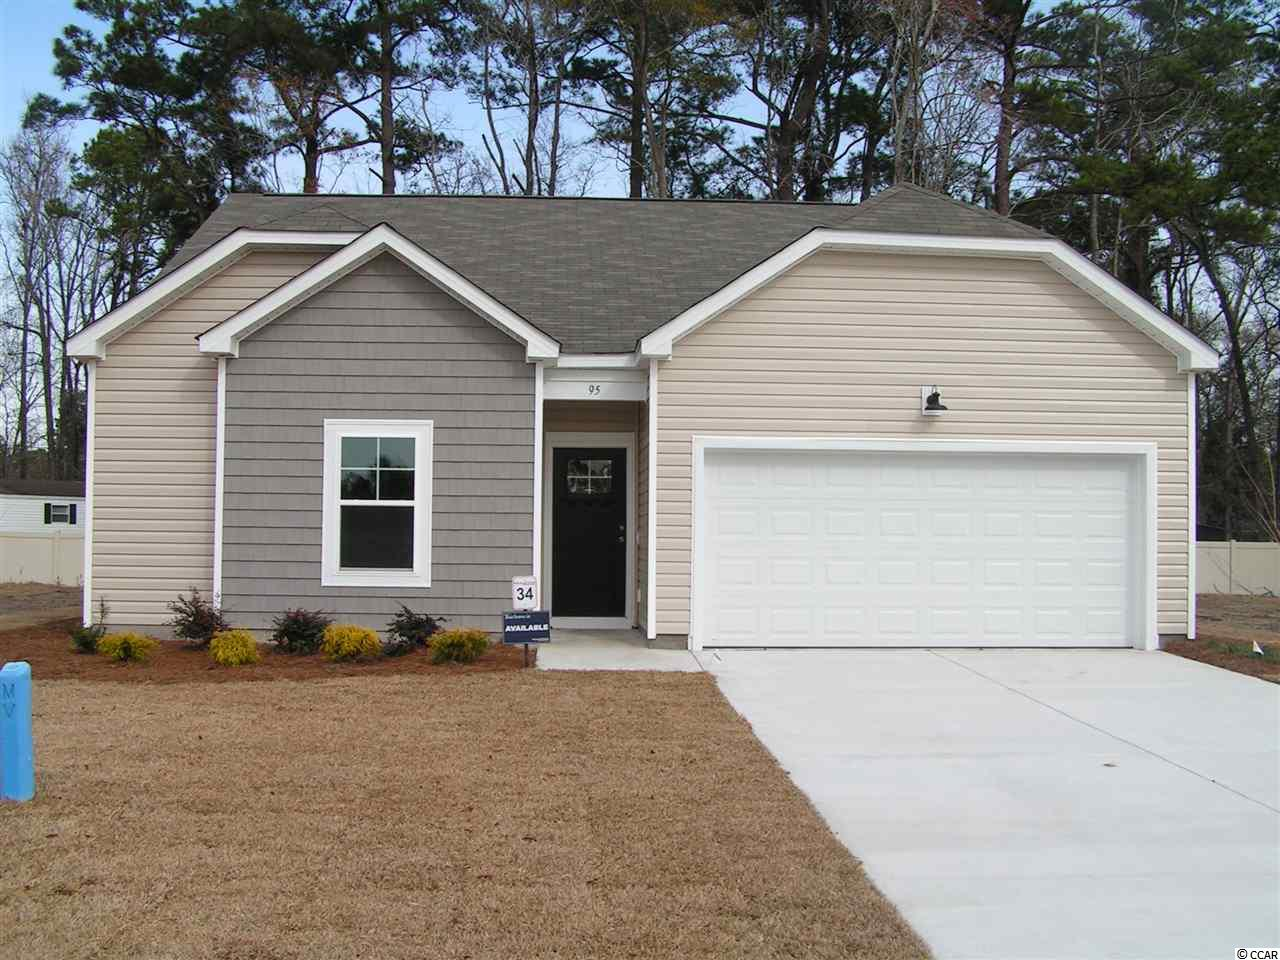 "This home is to be built home in the sought after community of Pawleys Cove, options and upgrades will vary as built. Pawleys Island is a famous seaside historic town known for it's carefree and laid back style with unspoiled beaches, eclectic dining, and challenging world-class golf gourses galore!  There's also great amenities close by to enjoy like bike trails, community parks, natural gardens, and local creeks for crabbing and fishing. With 7 open and uniquely designed home plans, these well-appointed homes offer a tremendous style and value with the tranquility of Pawleys Island as the backdrop.  Pawleys Cove will be a great place to make your memories happen.  This is the ""Patriot"" plan with an open concept family, dining and kitchen area and the laundry room is just off of kitchen with a linen closet.  Great storage in this home with all bedrooms having walk-in closets!  Pictures in this listing are of a similar home with options and upgrades and not the actual home.  All information is deemed reliable but not guaranteed.  Buyer is responsible for verification."